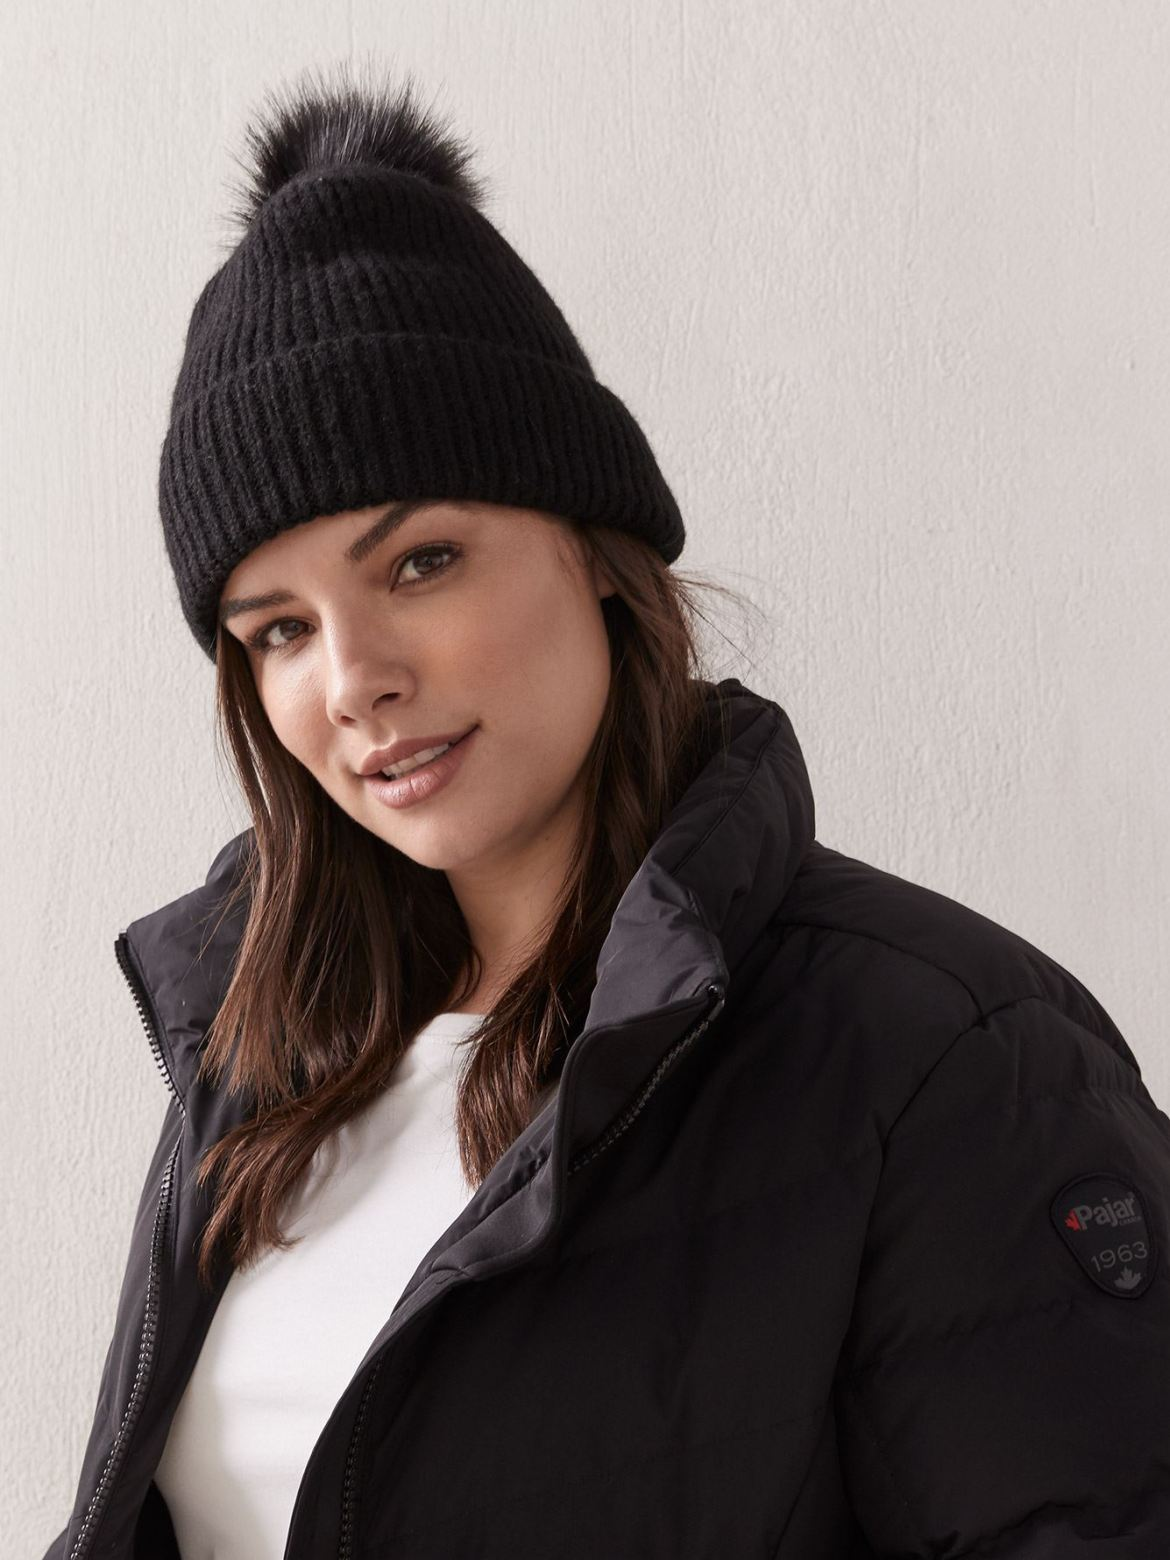 Queens Quilted Coat with Fur Trimmed Hood - Pajar